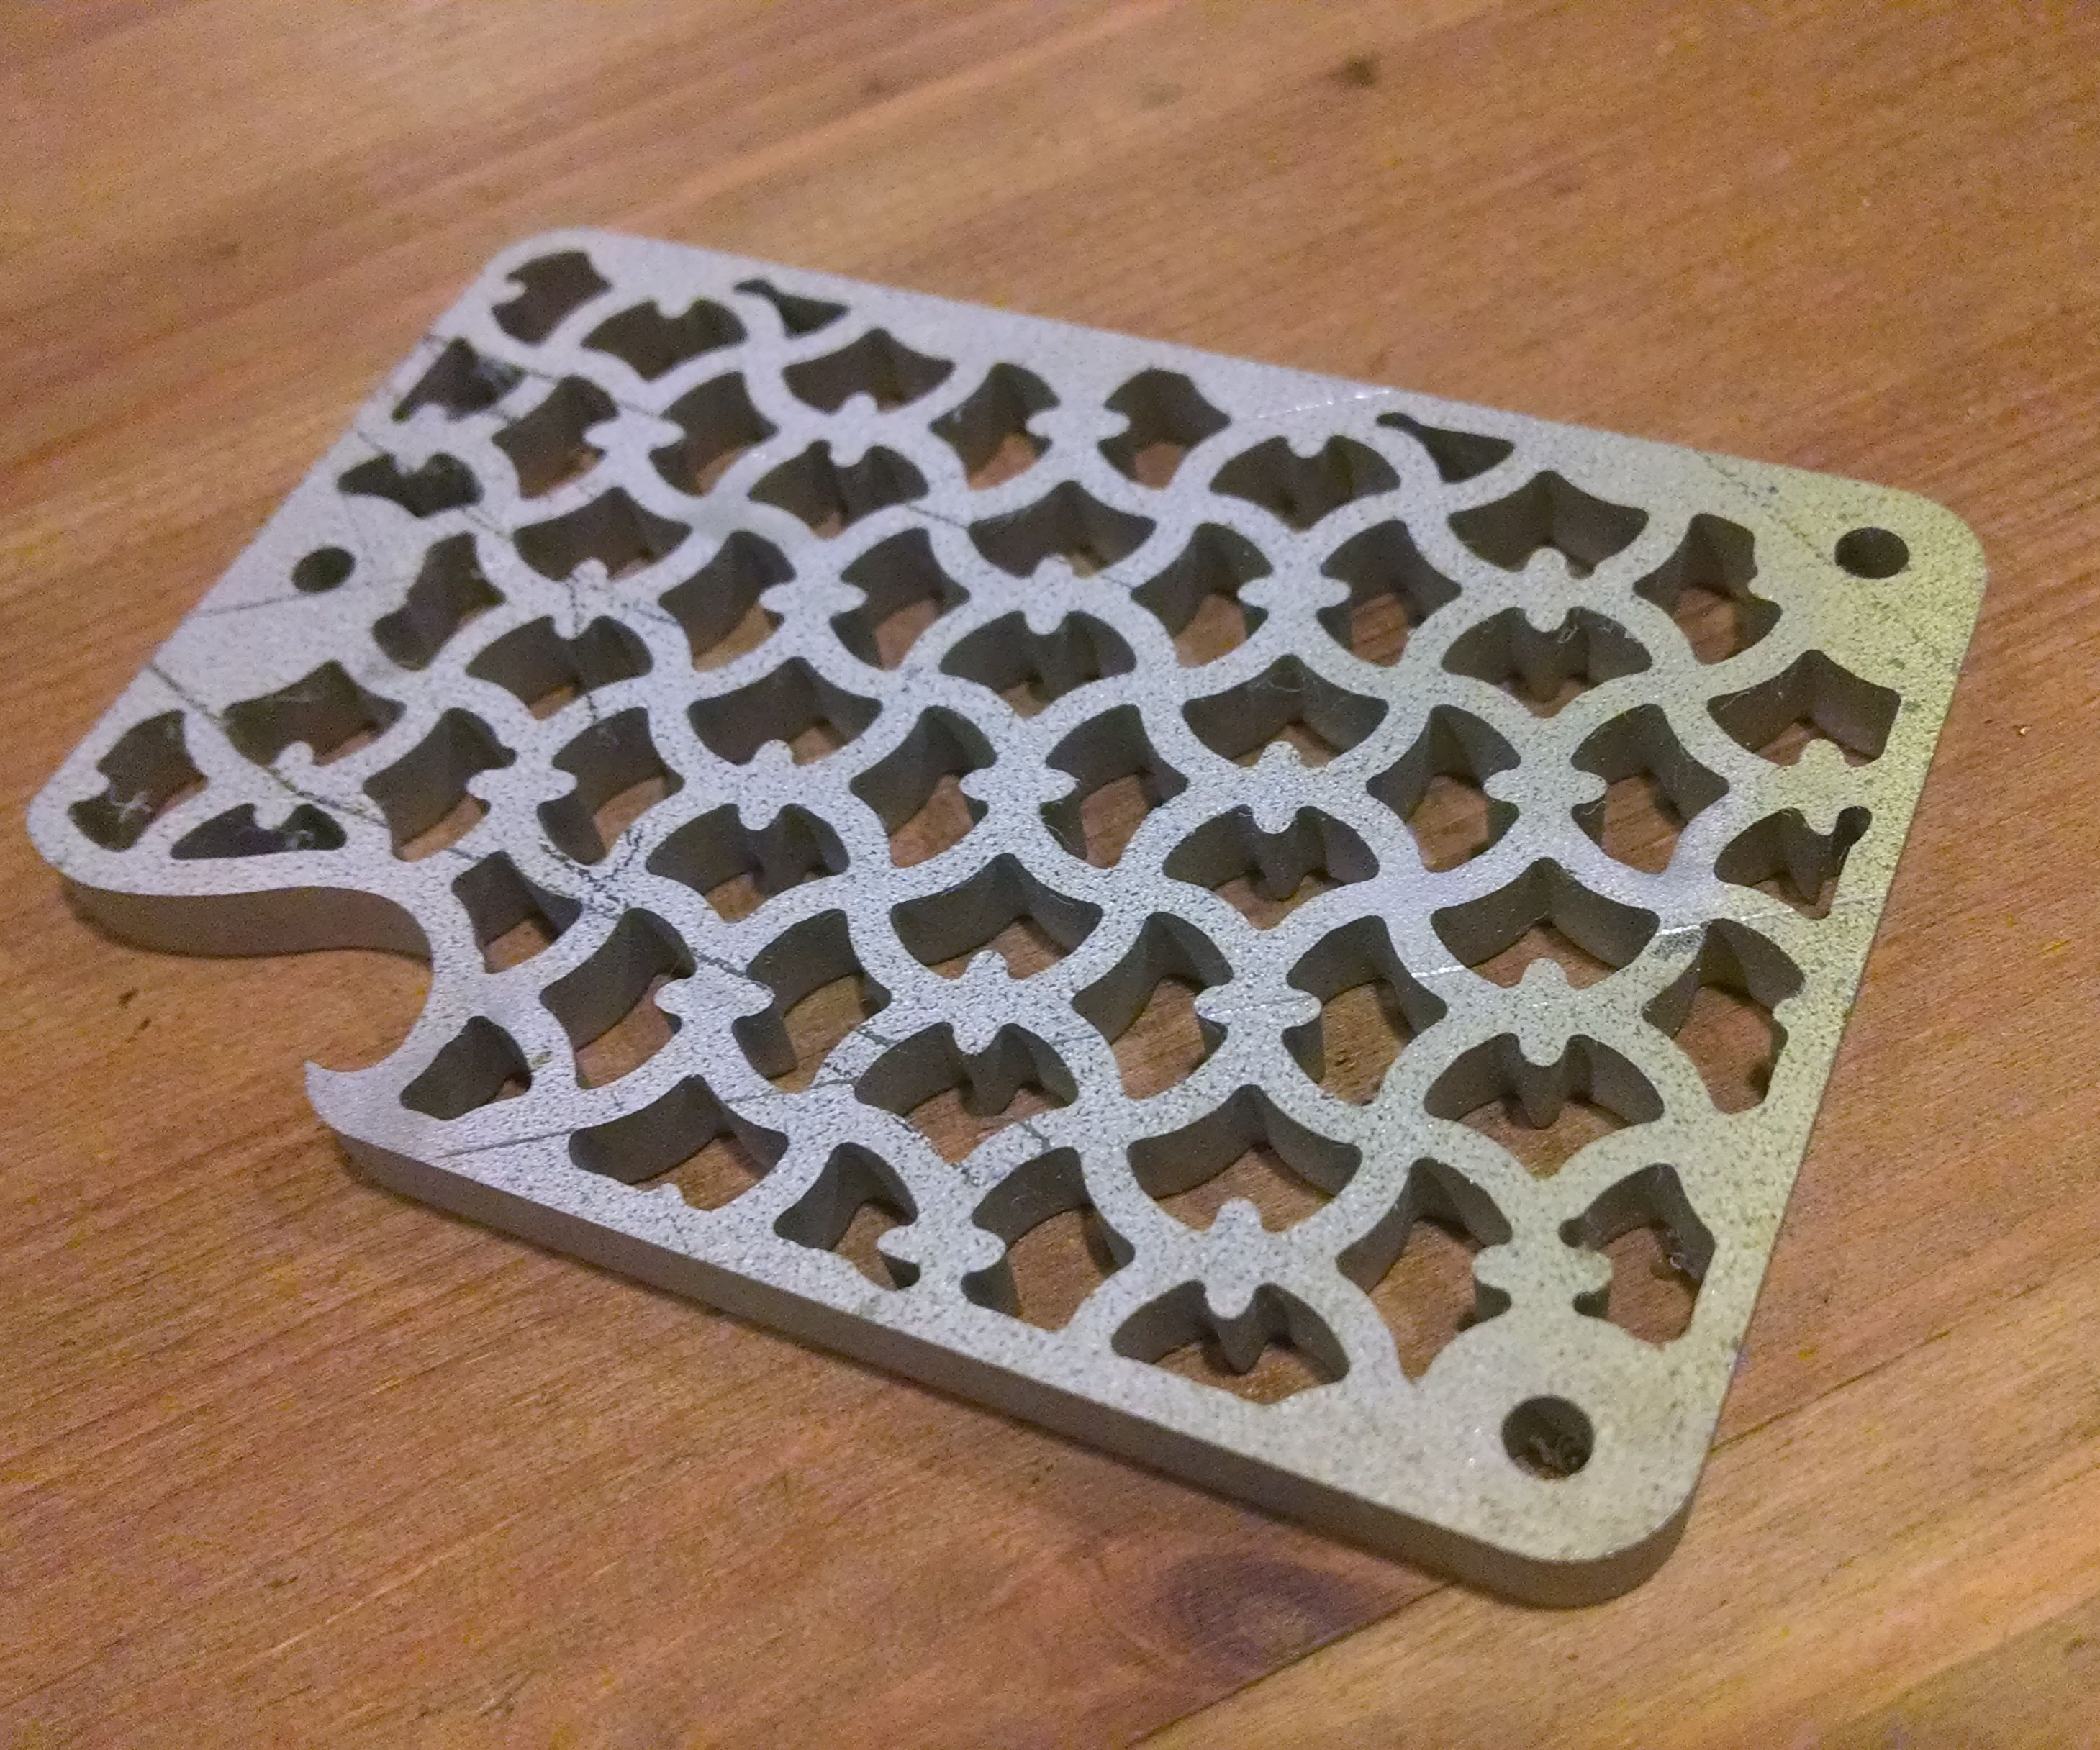 Getting Metal Parts Laser- or Waterjet Cut: A Beginner's Guide